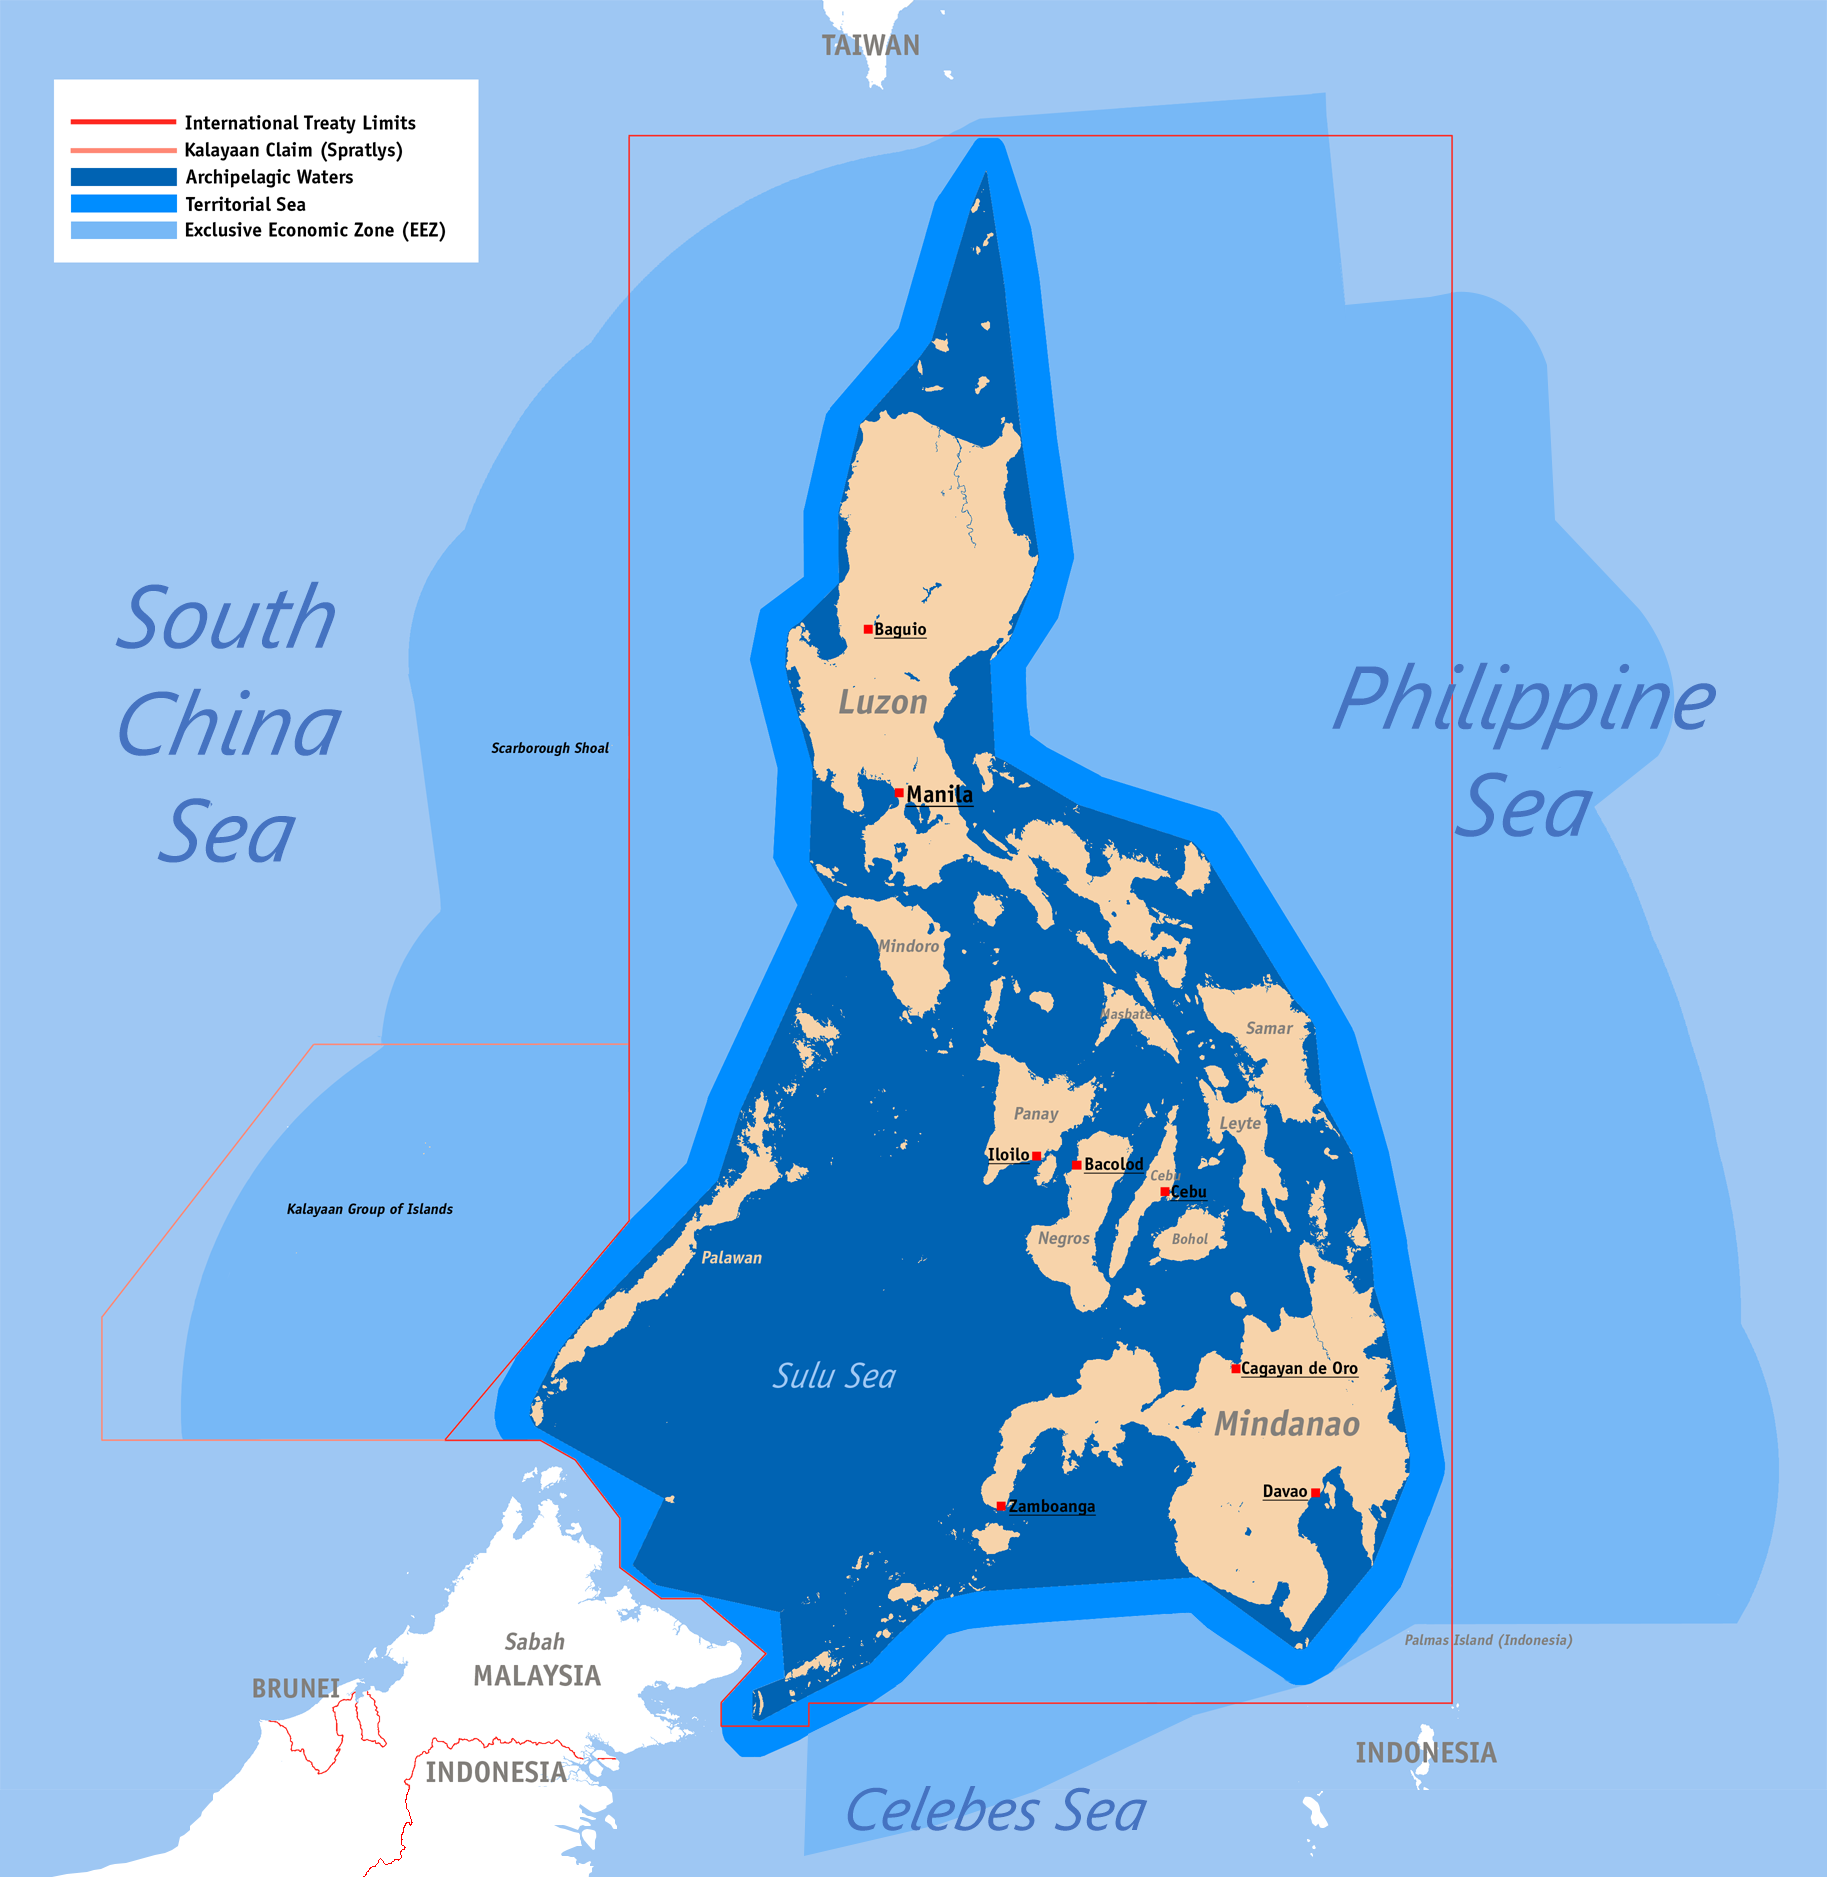 EXPLORATION OF OIL IN THE PHILIPPINES INCLUDING PANATAG SHOAL and